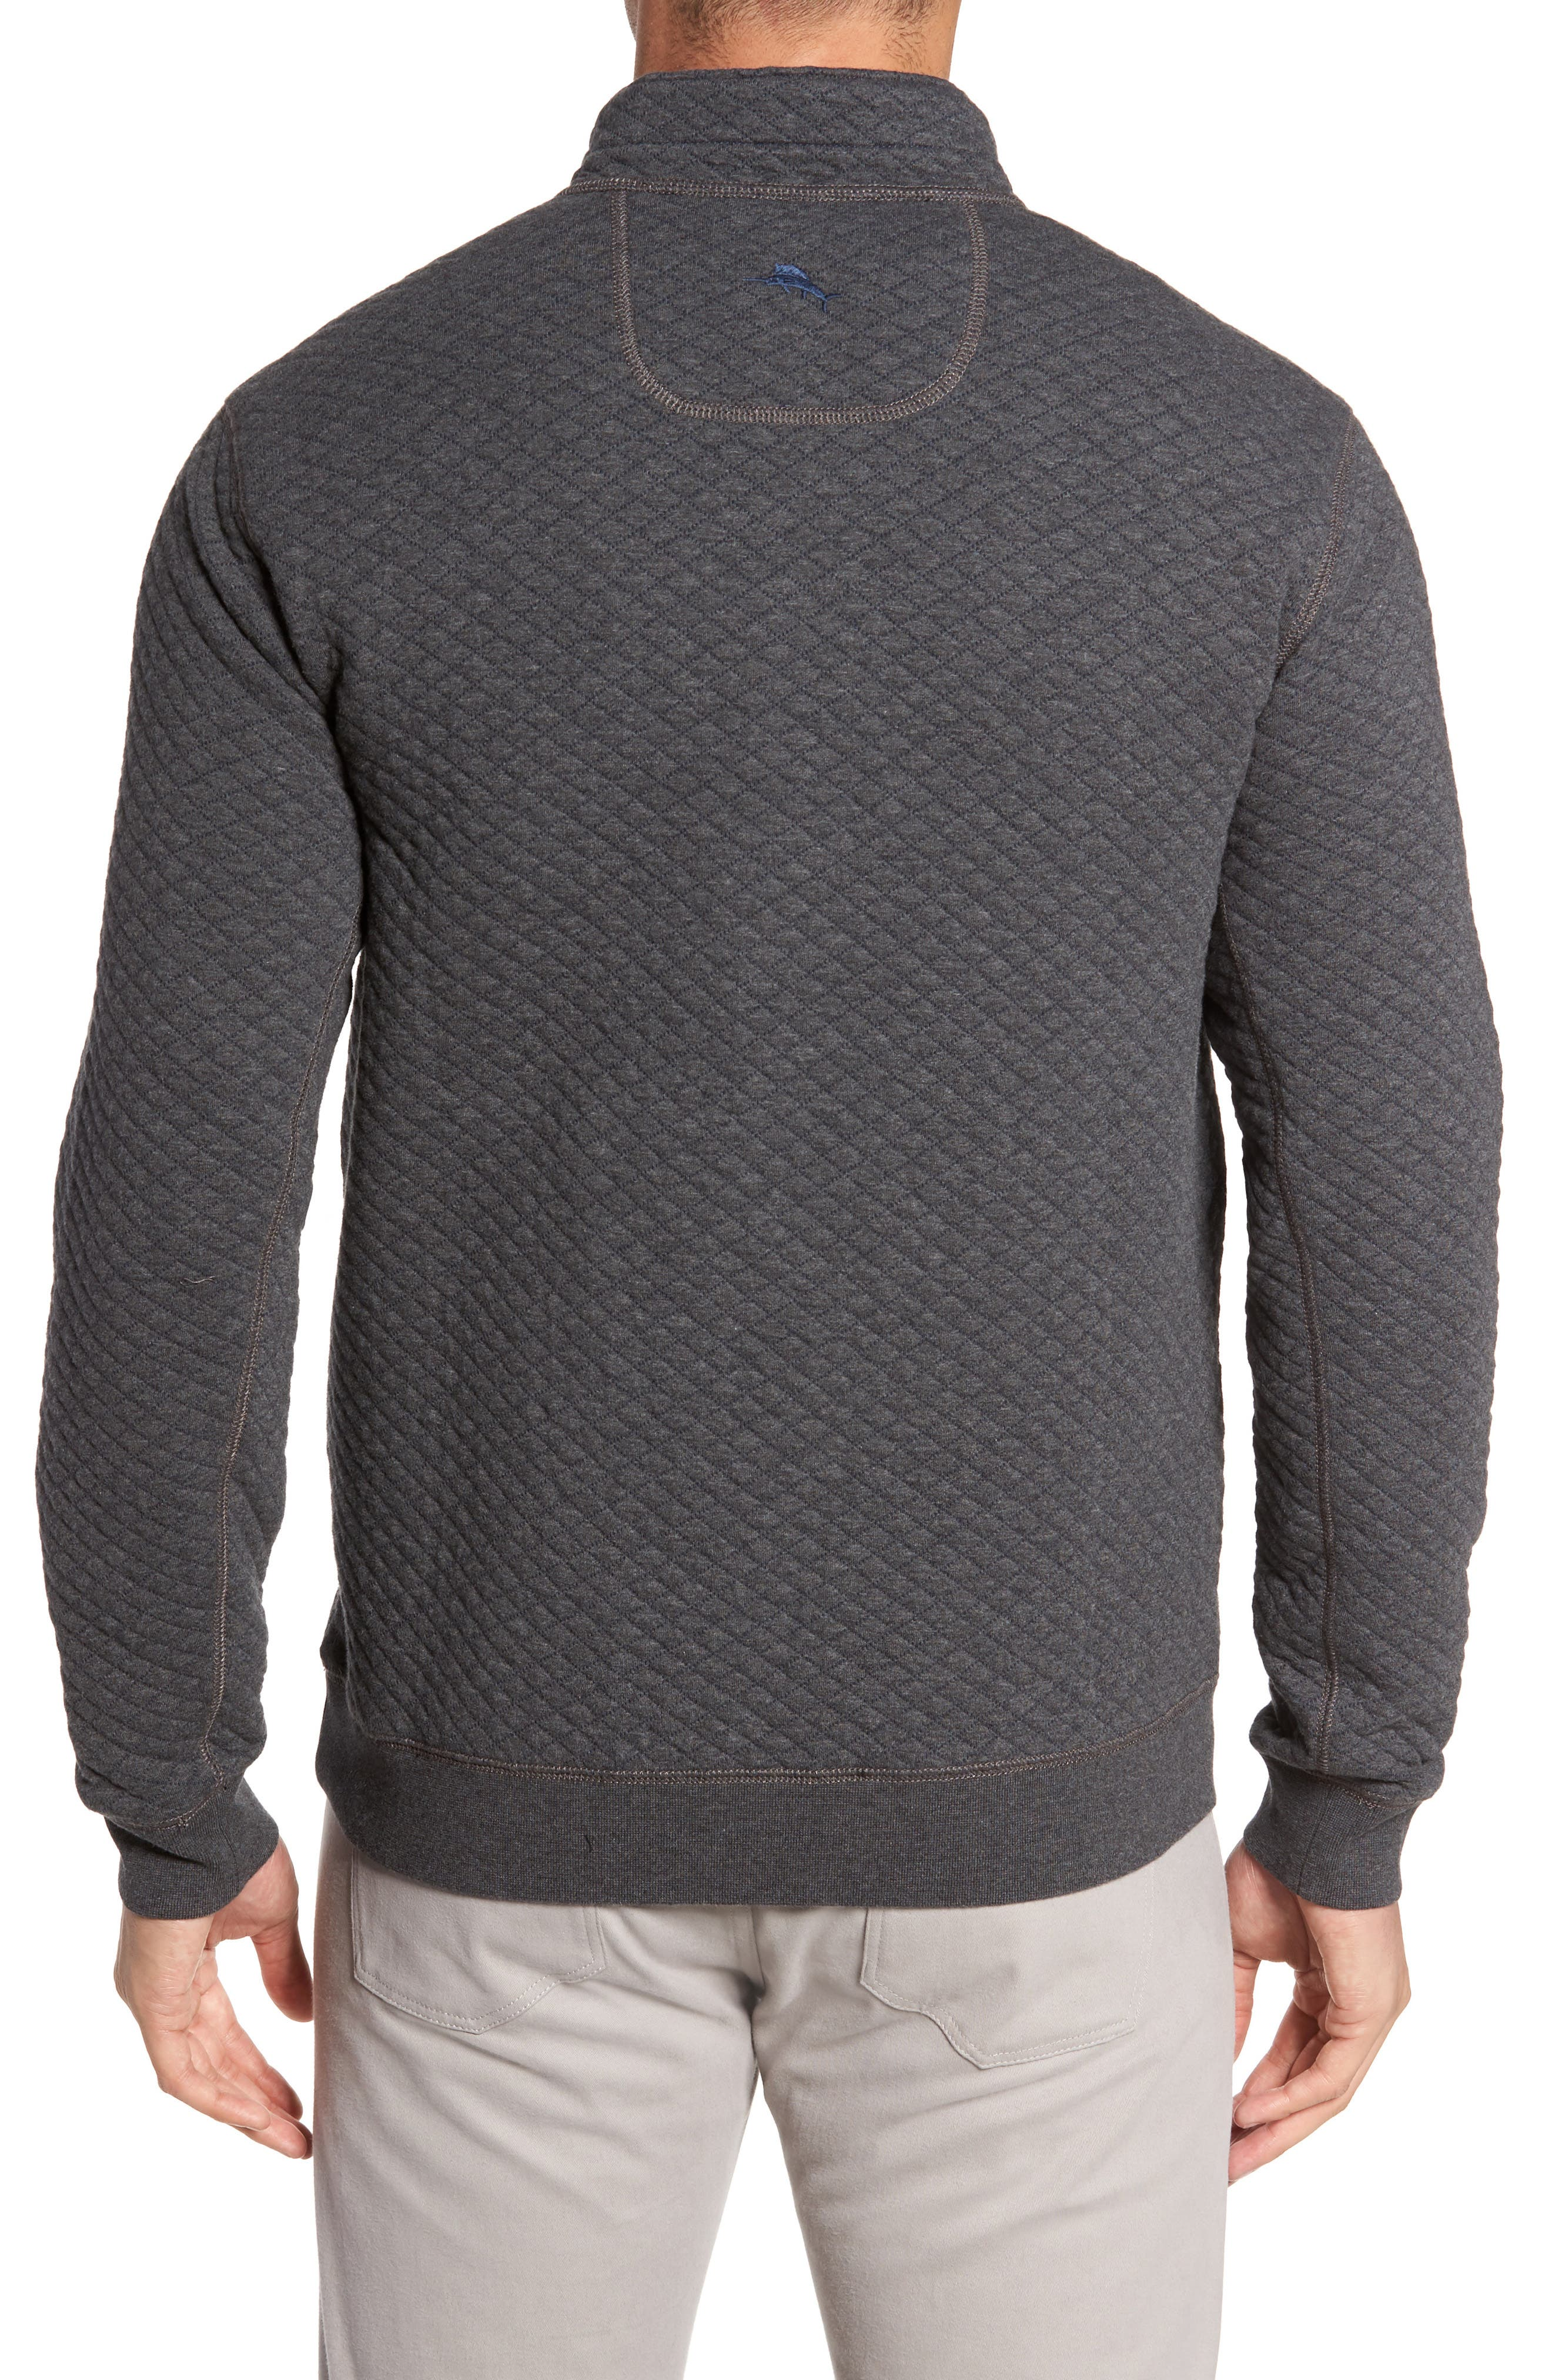 TOMMY BAHAMA, Quiltessential Standard Fit Quarter Zip Pullover, Alternate thumbnail 2, color, CHARCOAL HEATHER